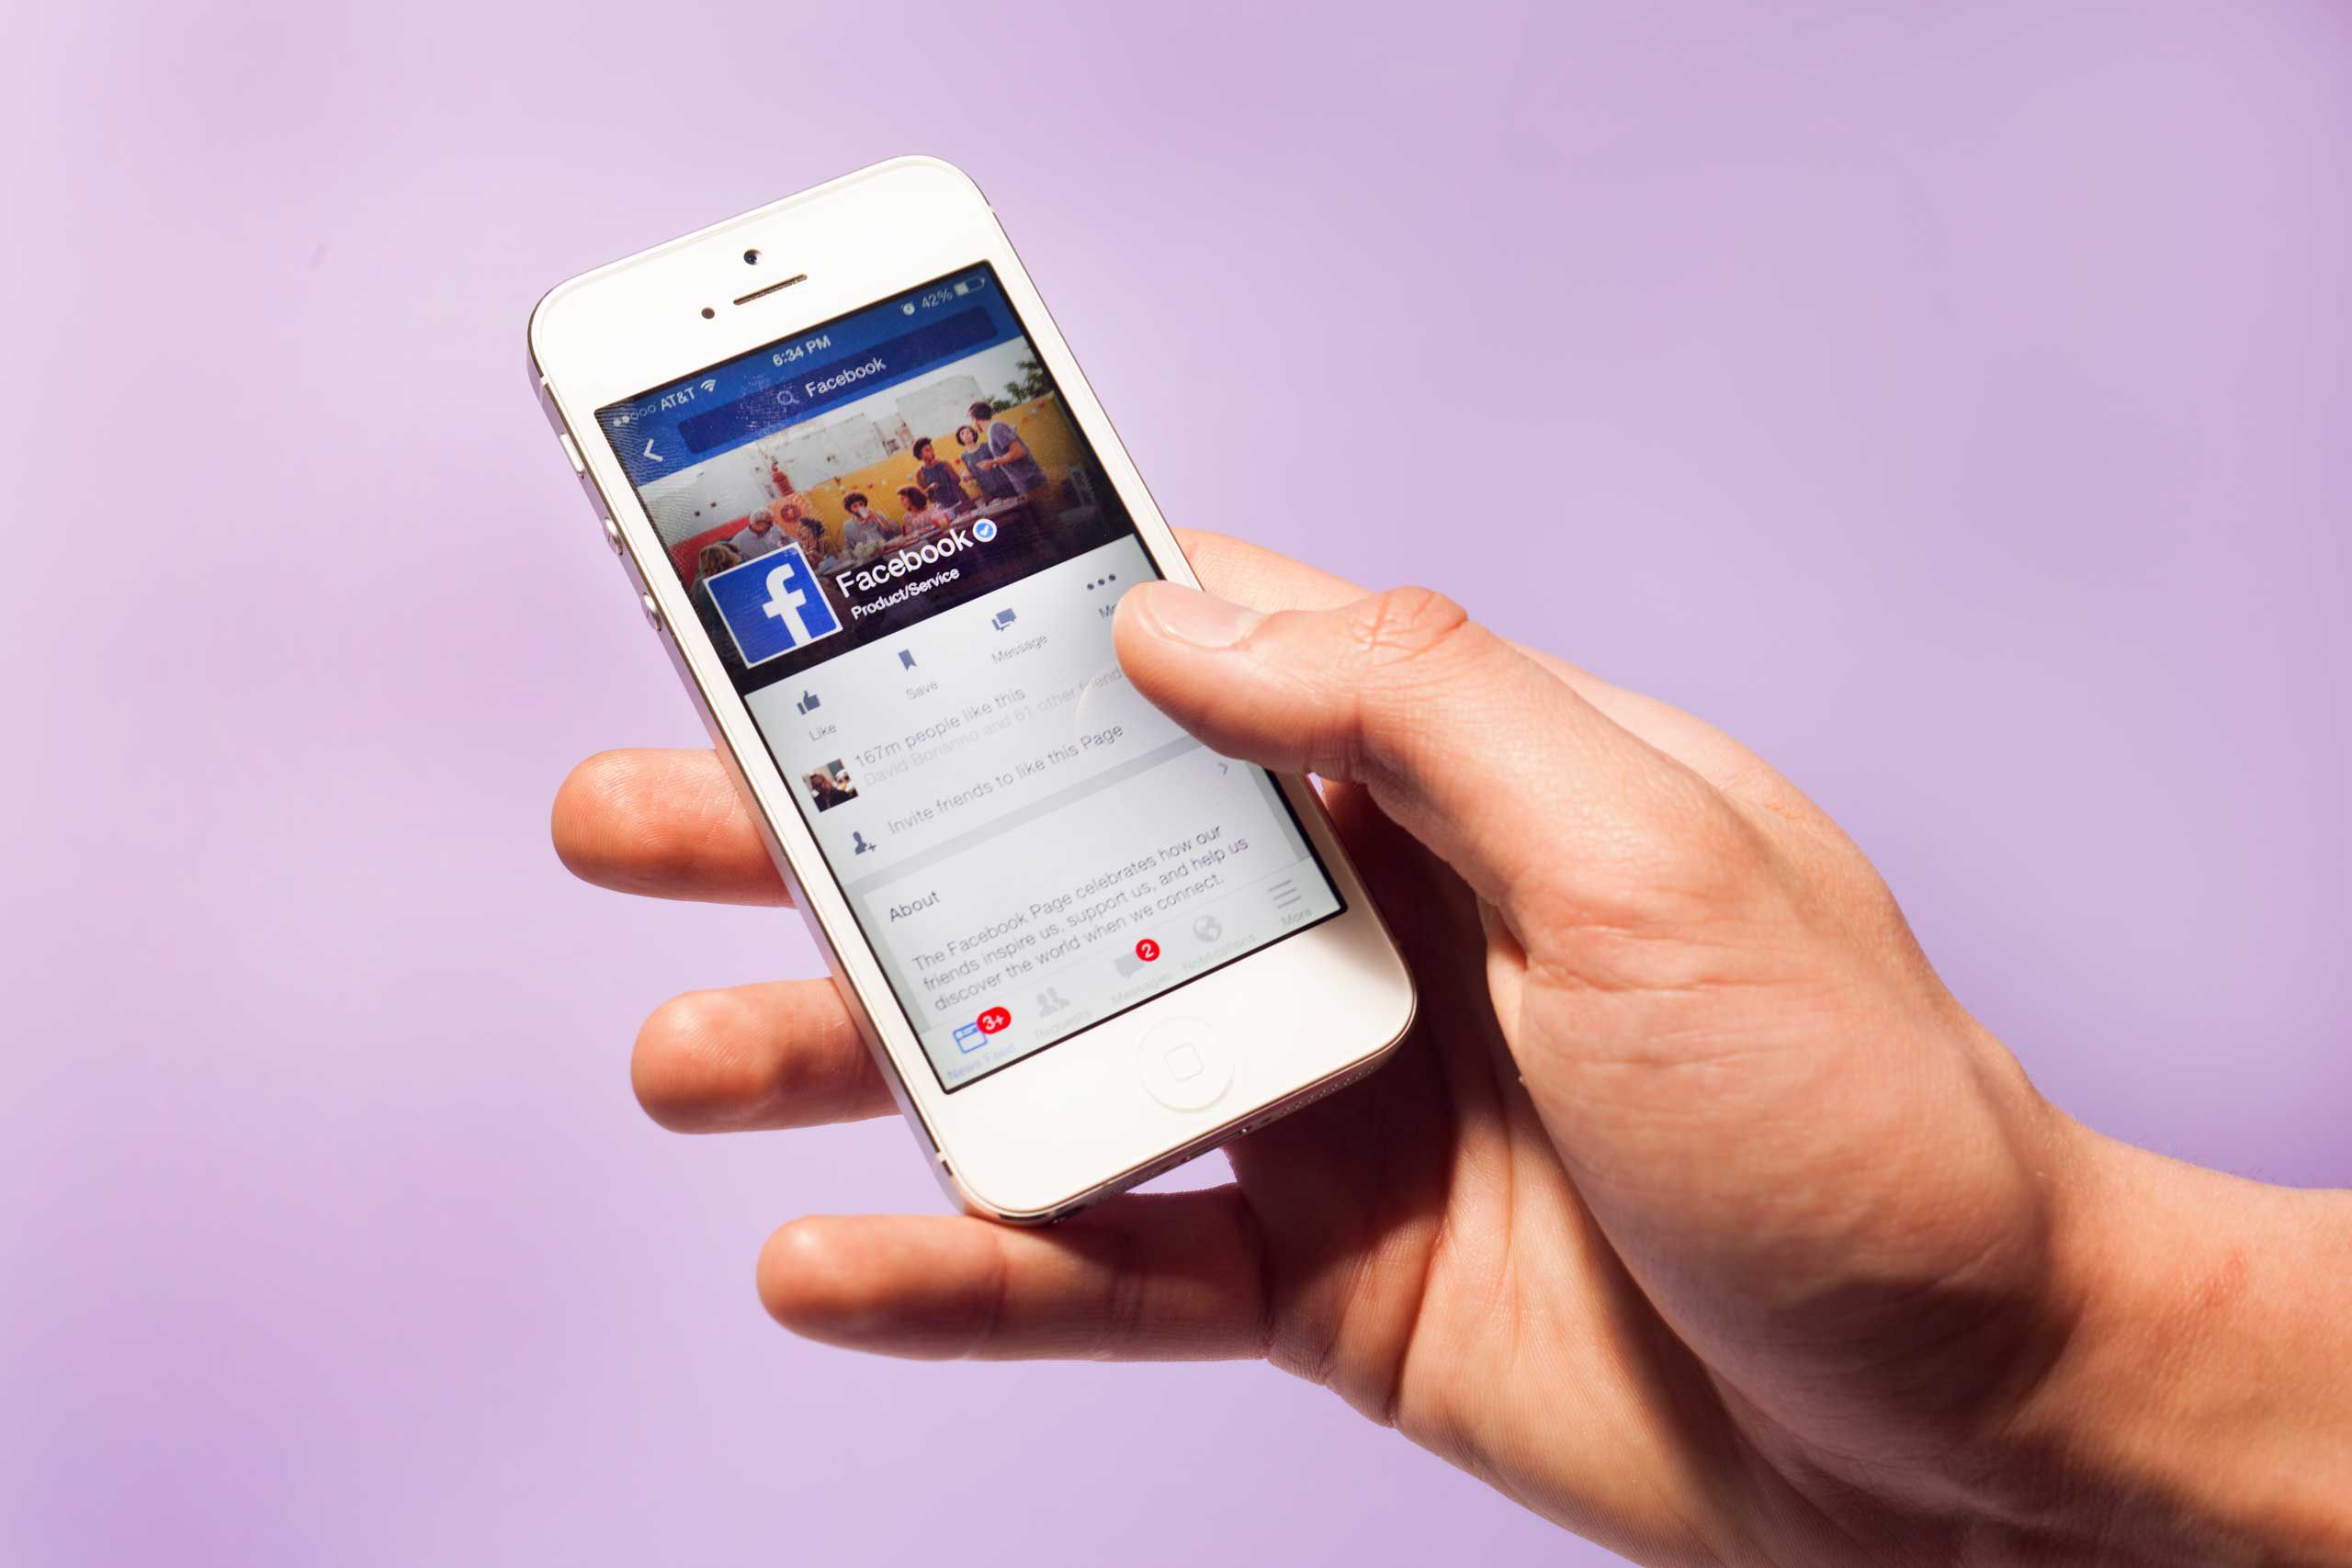 scaricare video da Facebook su iPhone